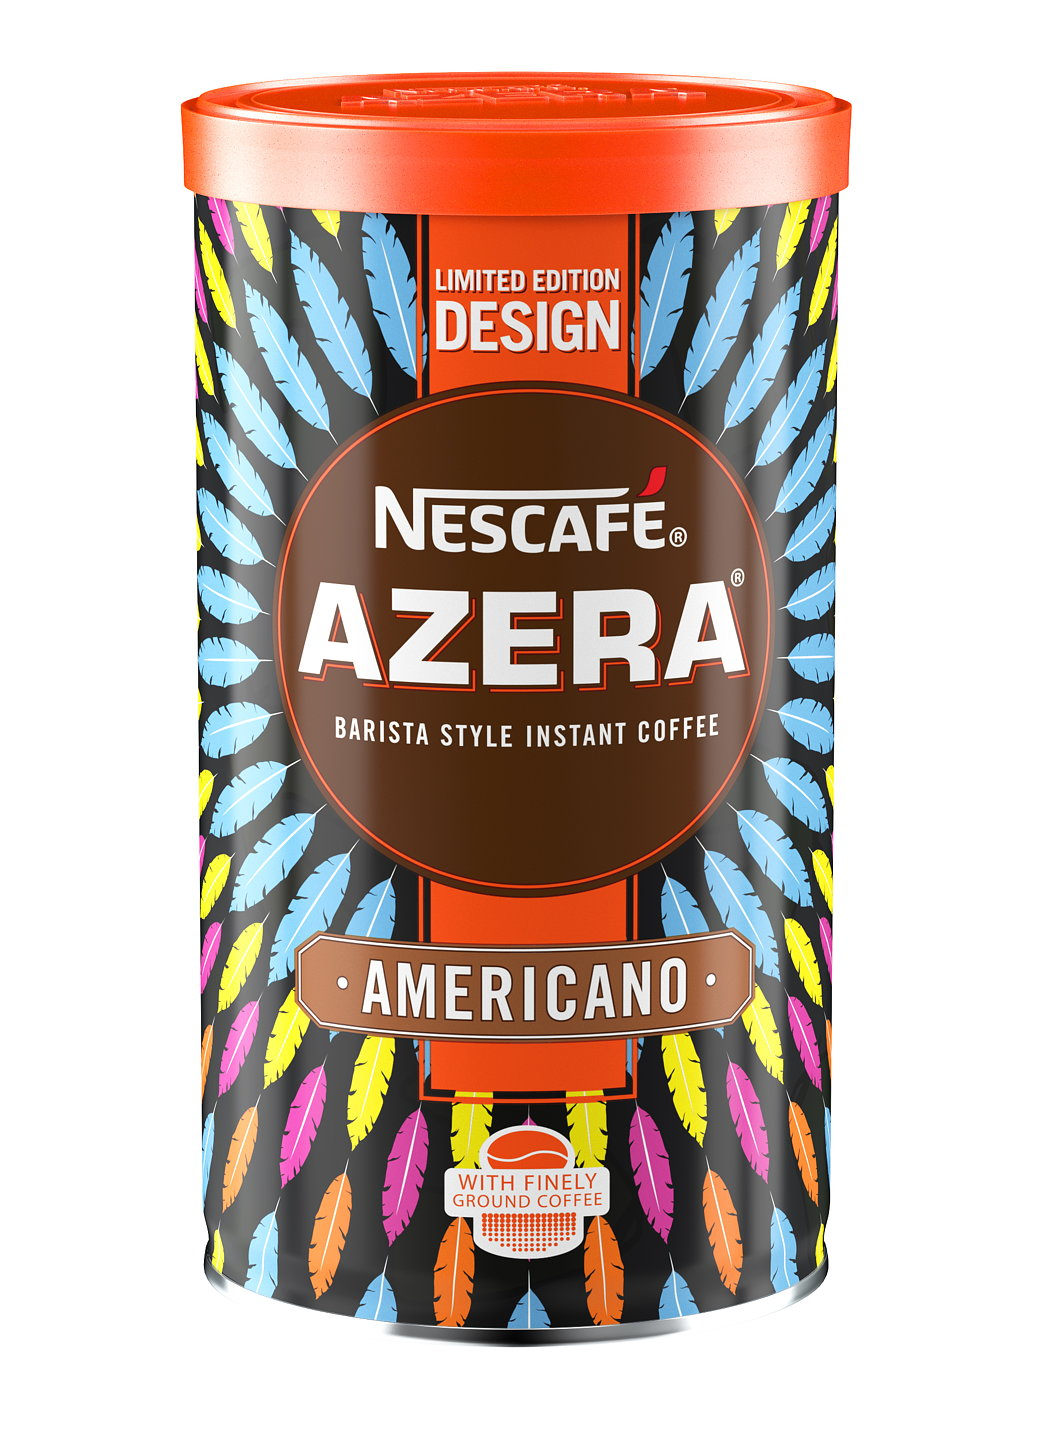 Limited Edition Birthday Collection: Nescafé Azera And Twelve Launch Range Of Iconic Tins